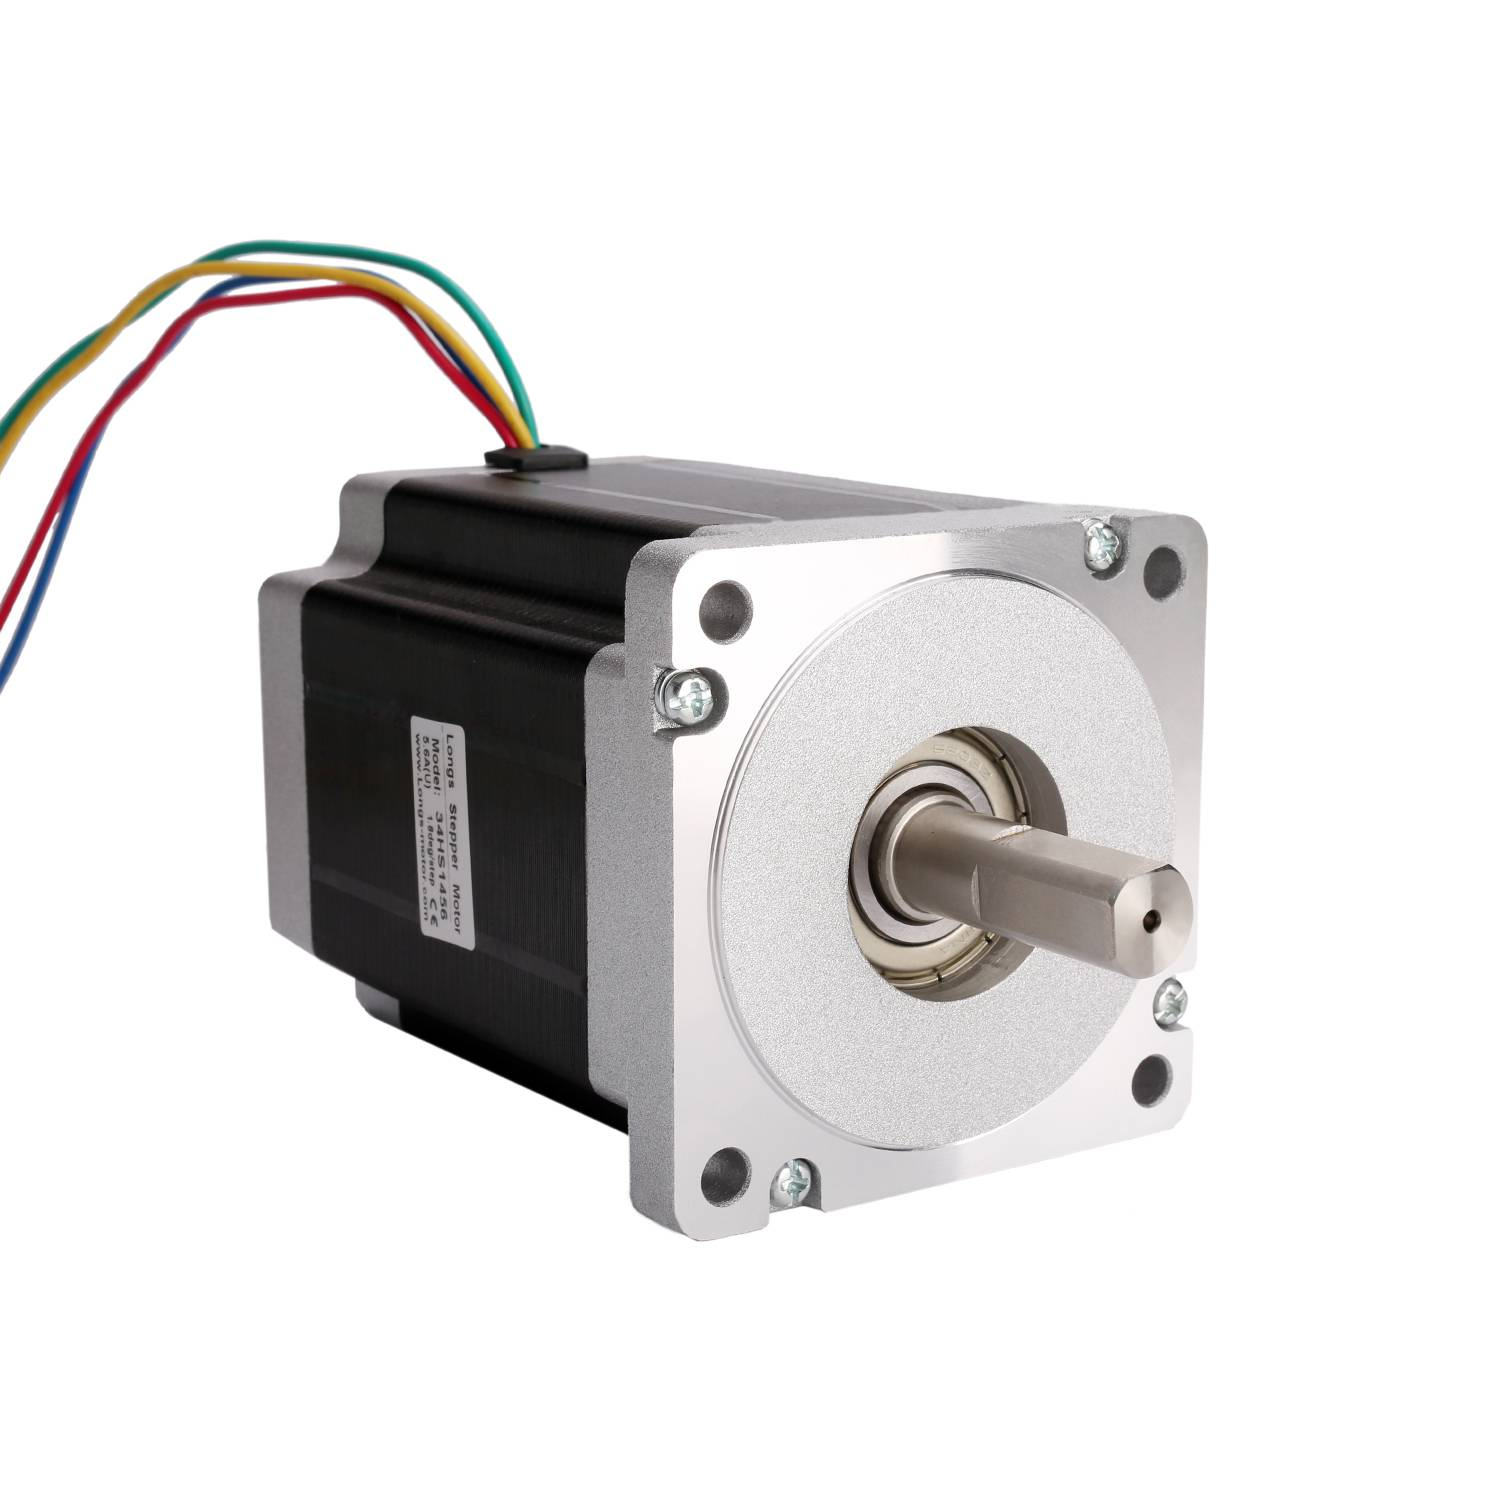 HYBRID STEPPER MOTOR-Nema34 Ms